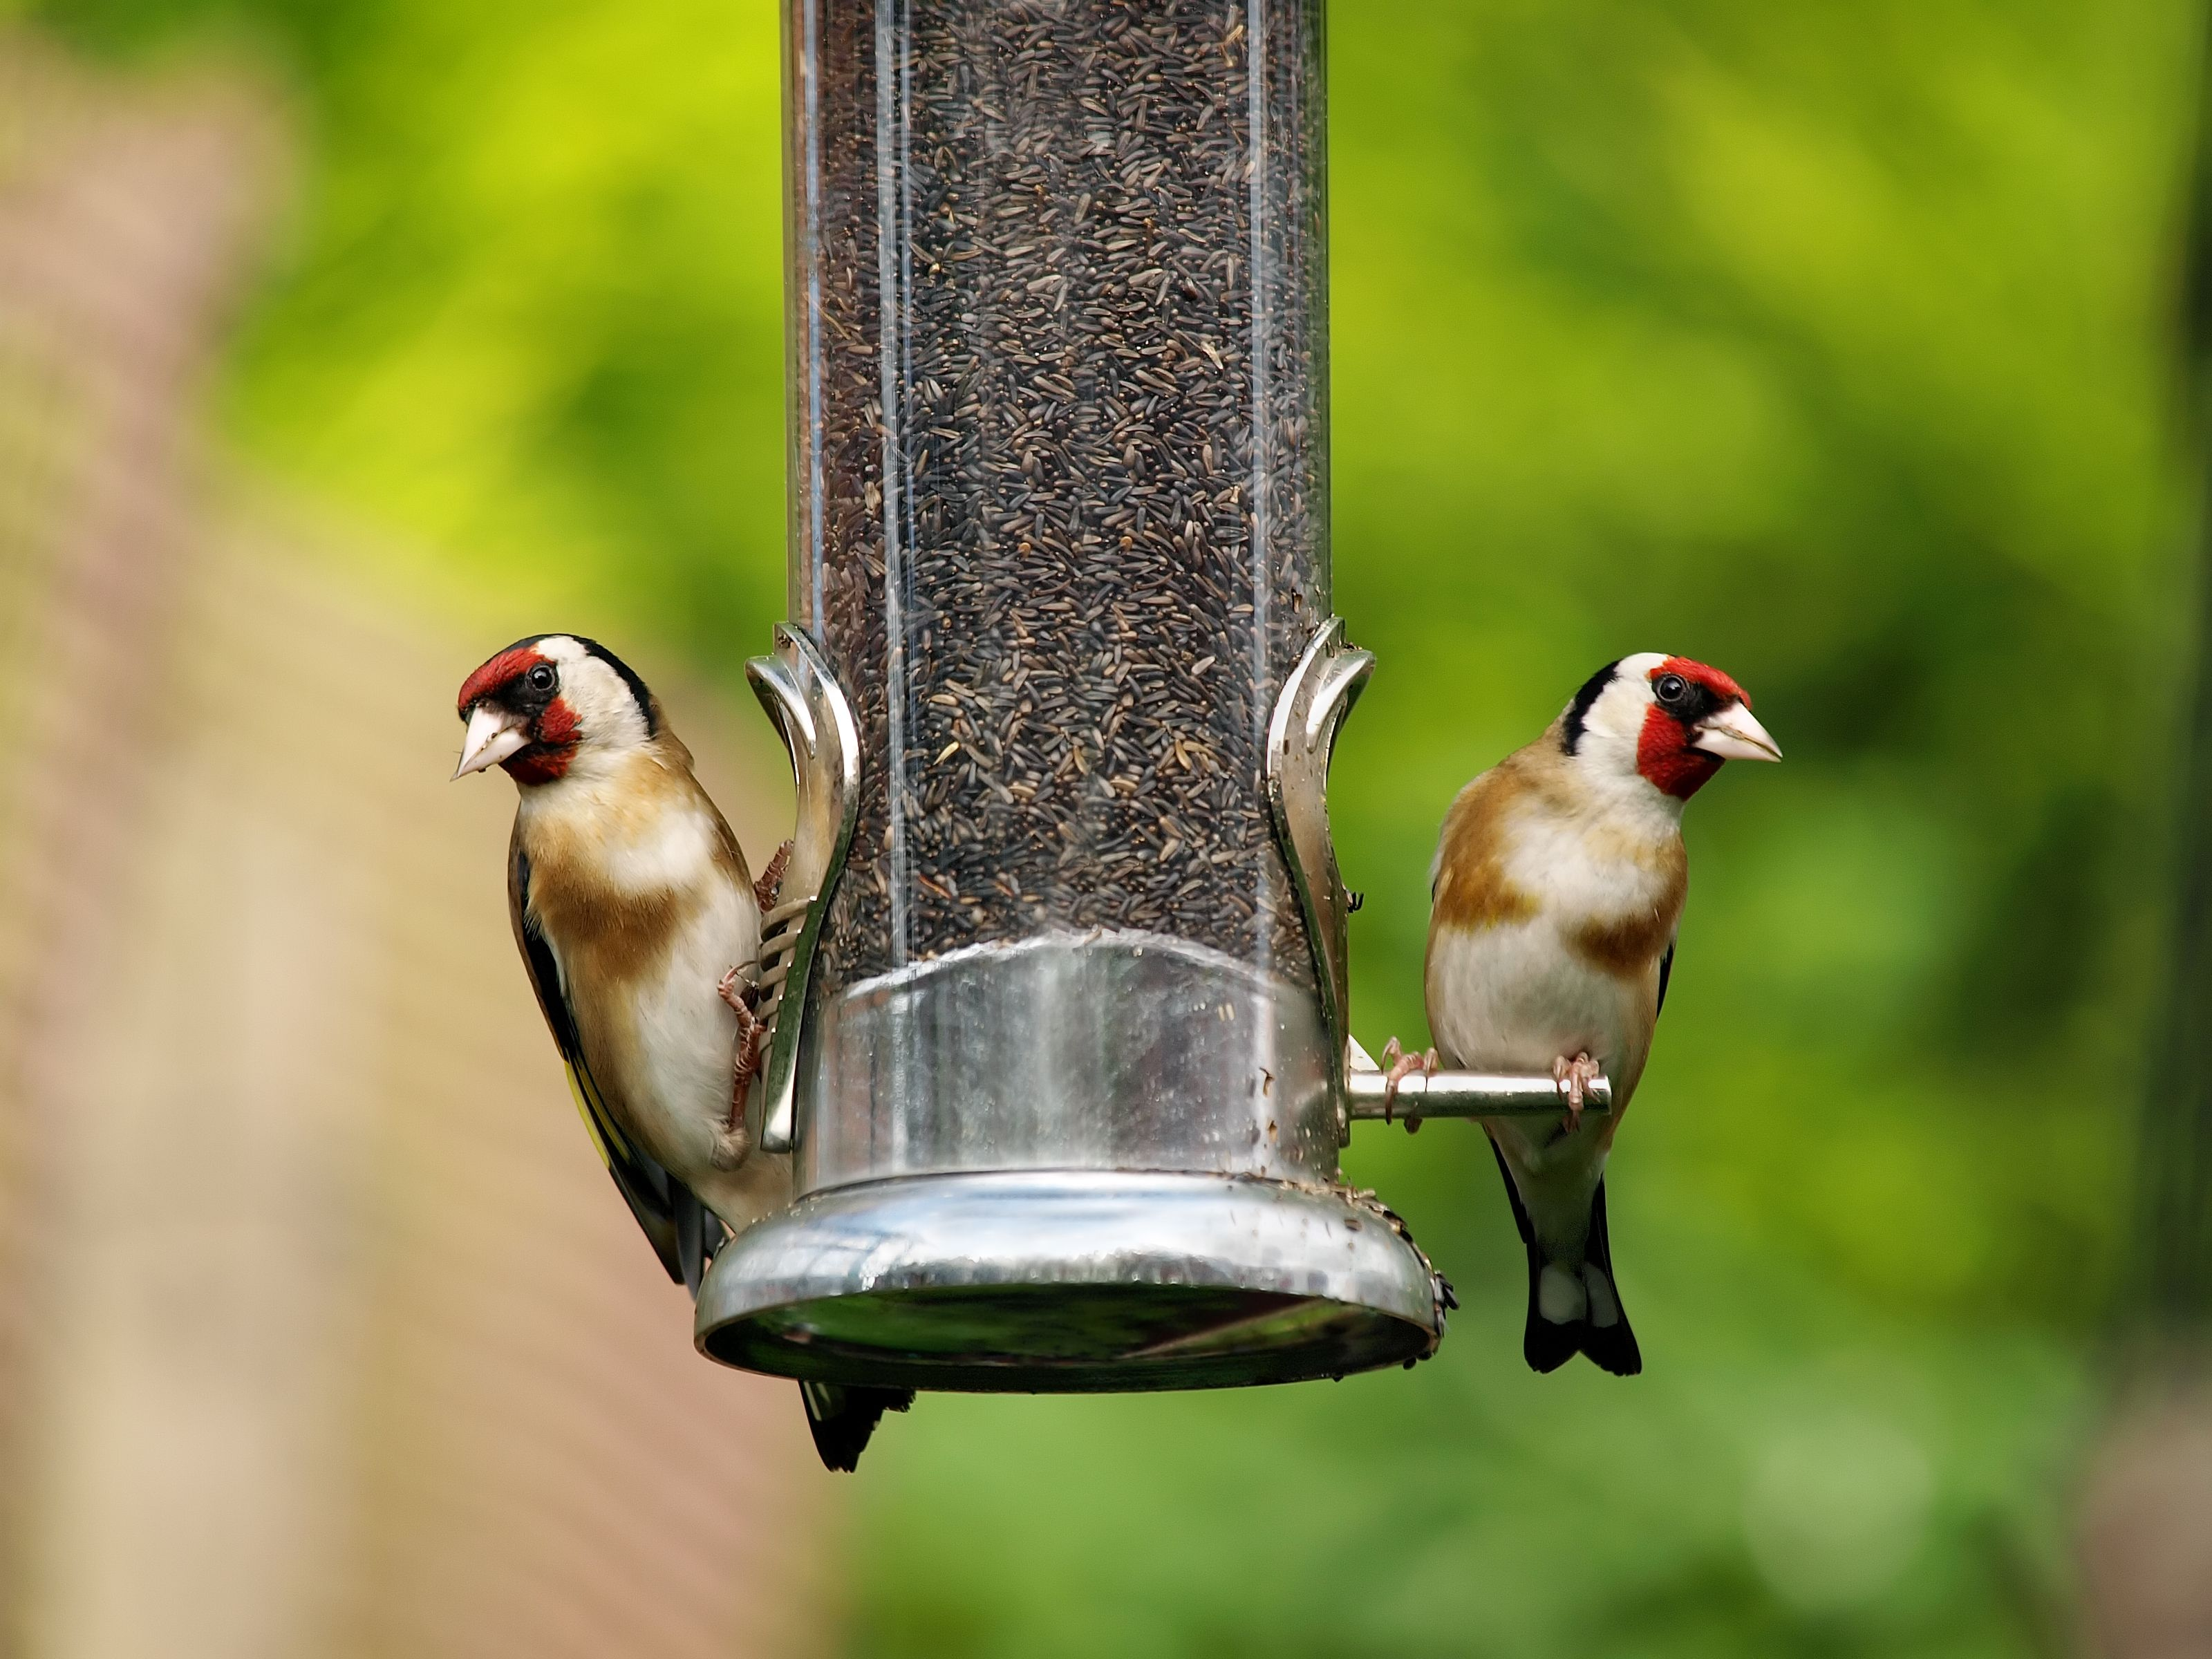 British households are being urged to feed birds using kitchen scraps